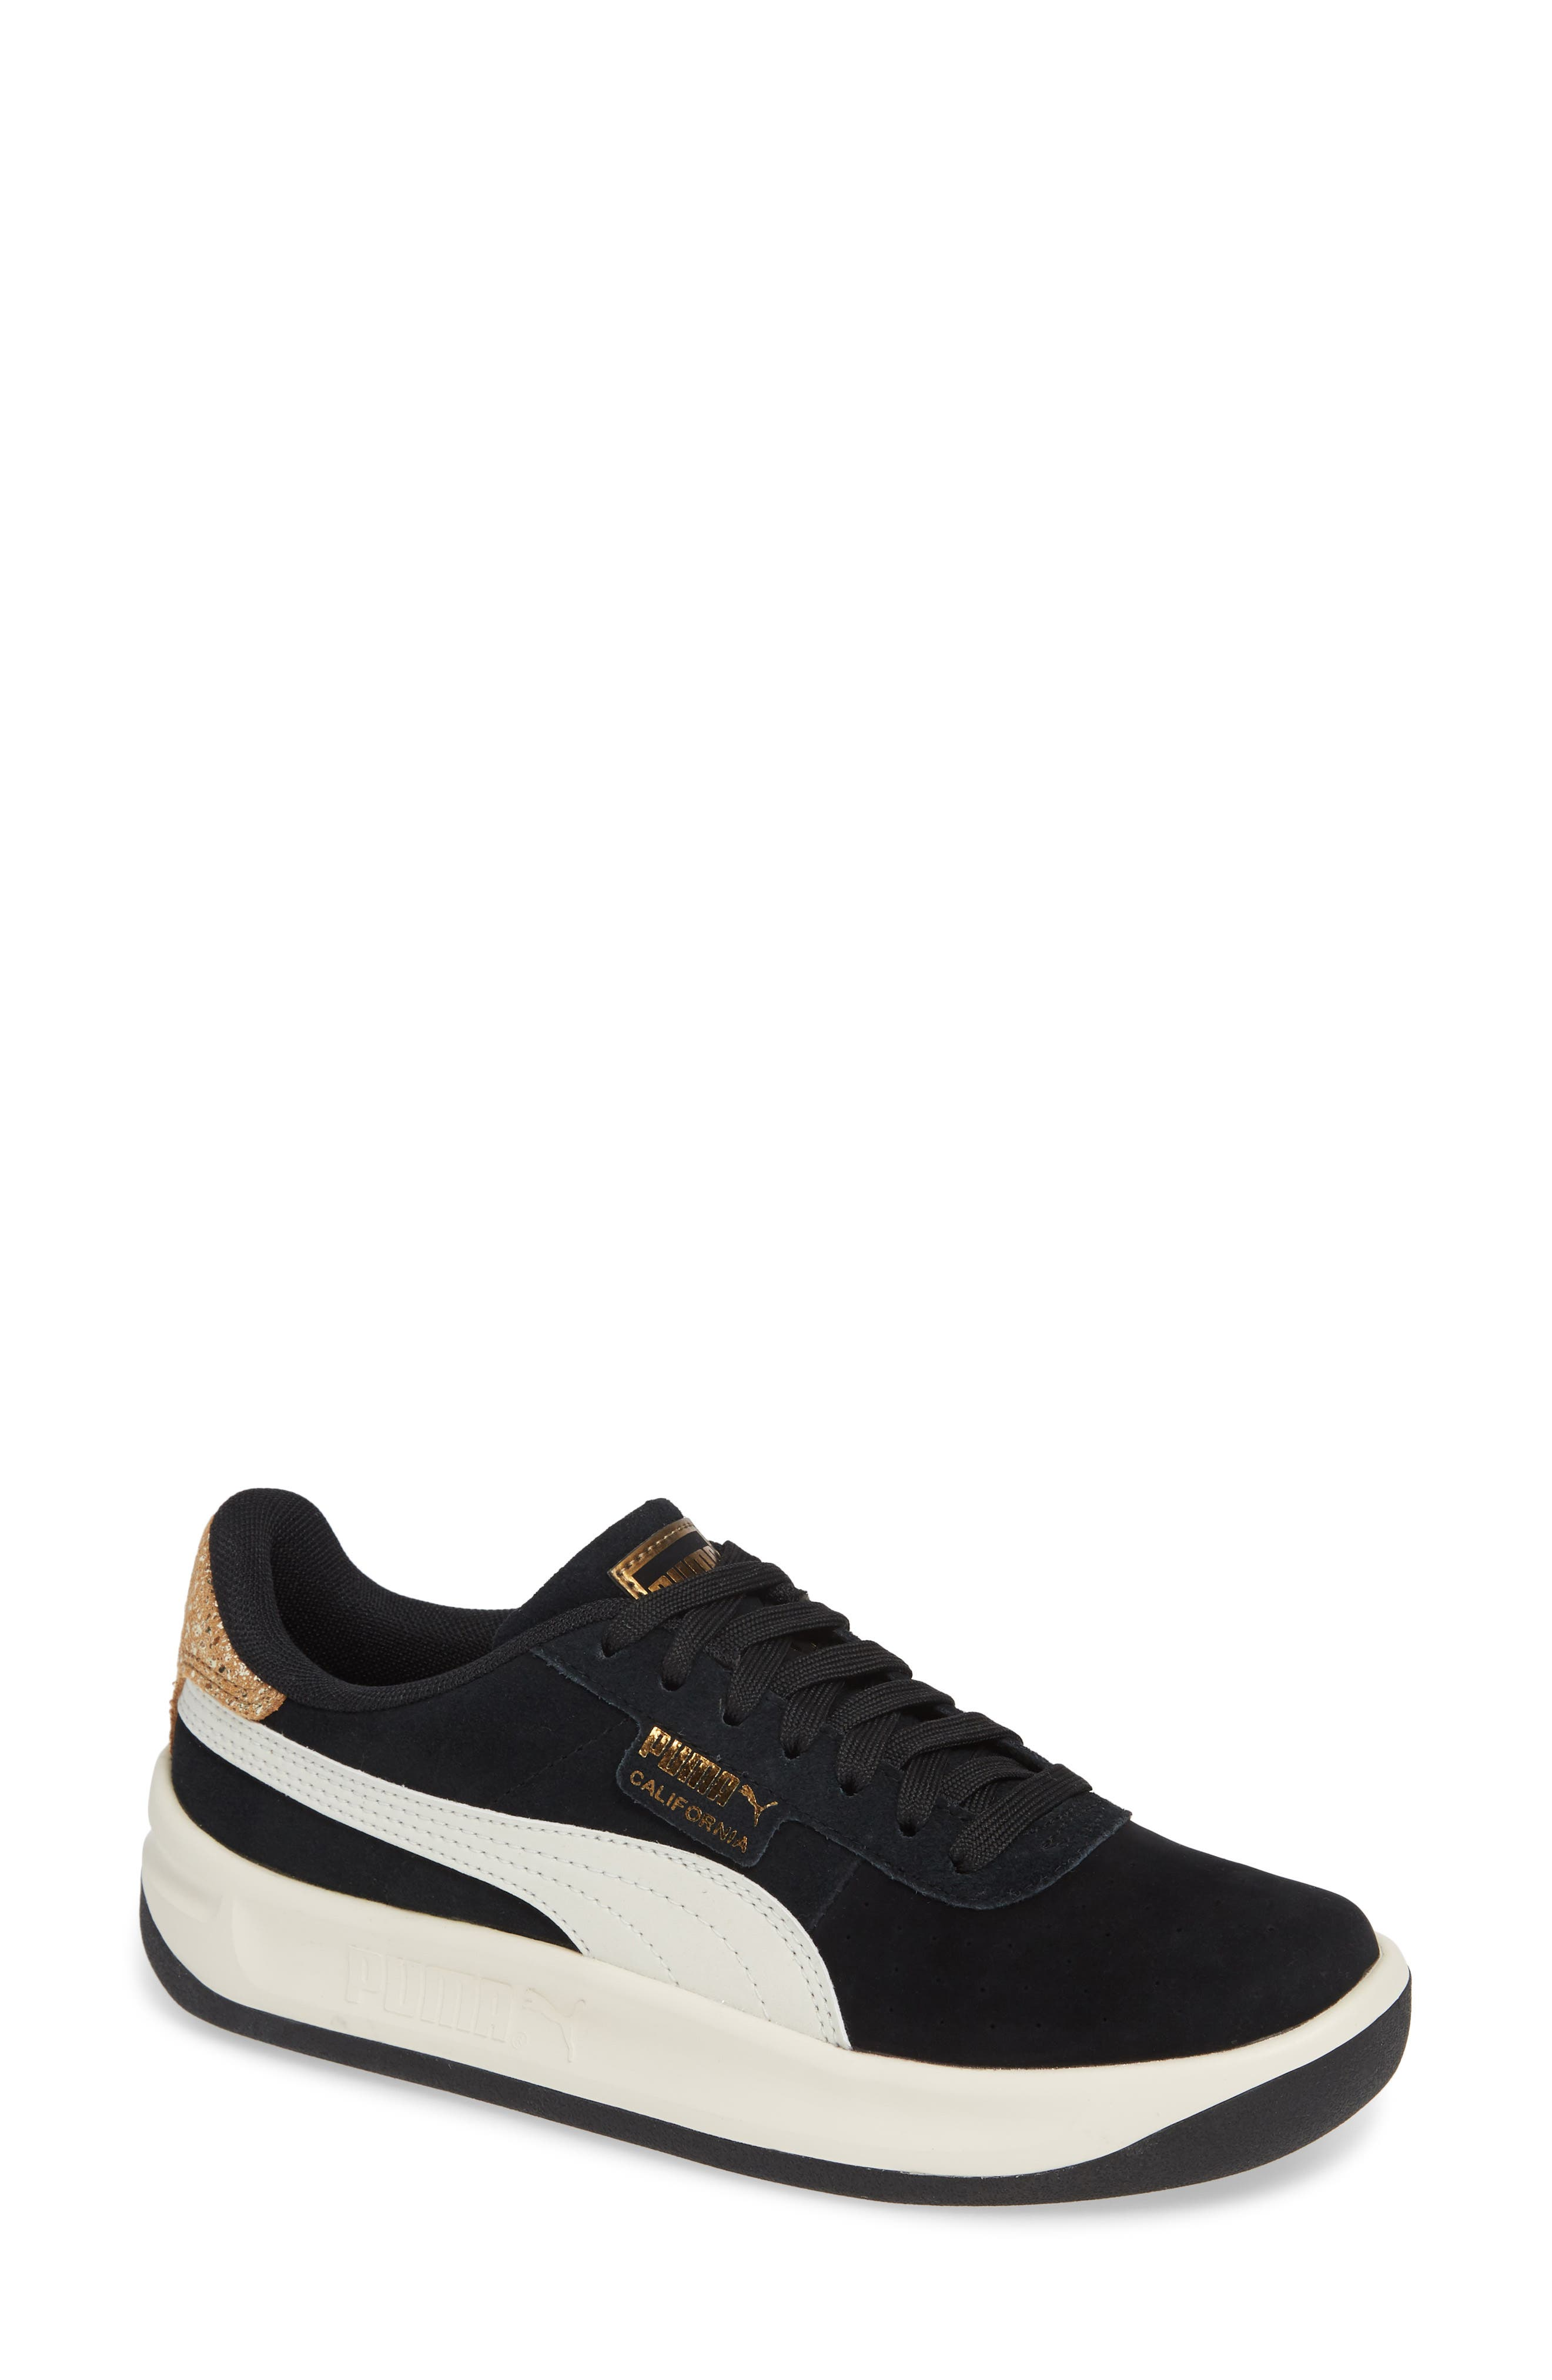 PUMA, California Metallic Sneaker, Main thumbnail 1, color, BLACK/ WHITE/ METALLIC BRONZE